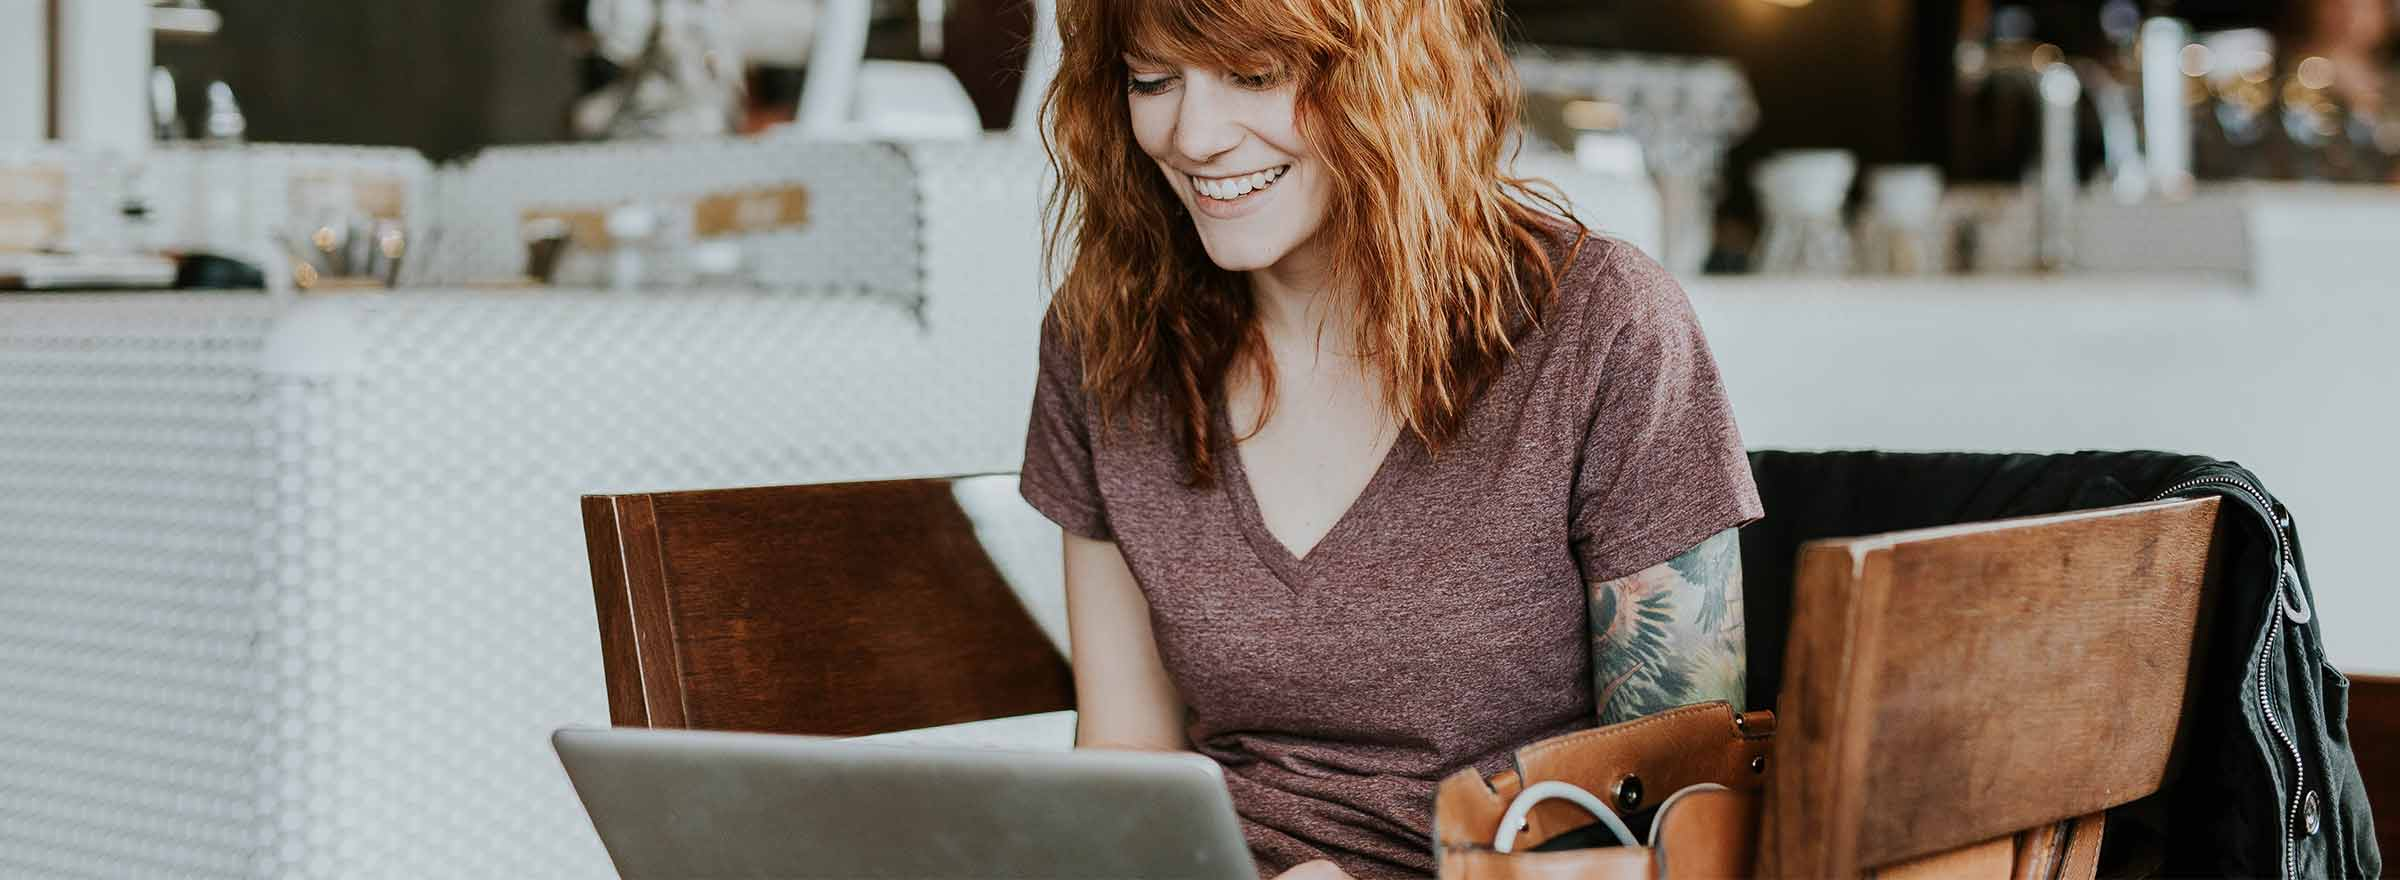 woman sitting on two facing chairs and using a laptop